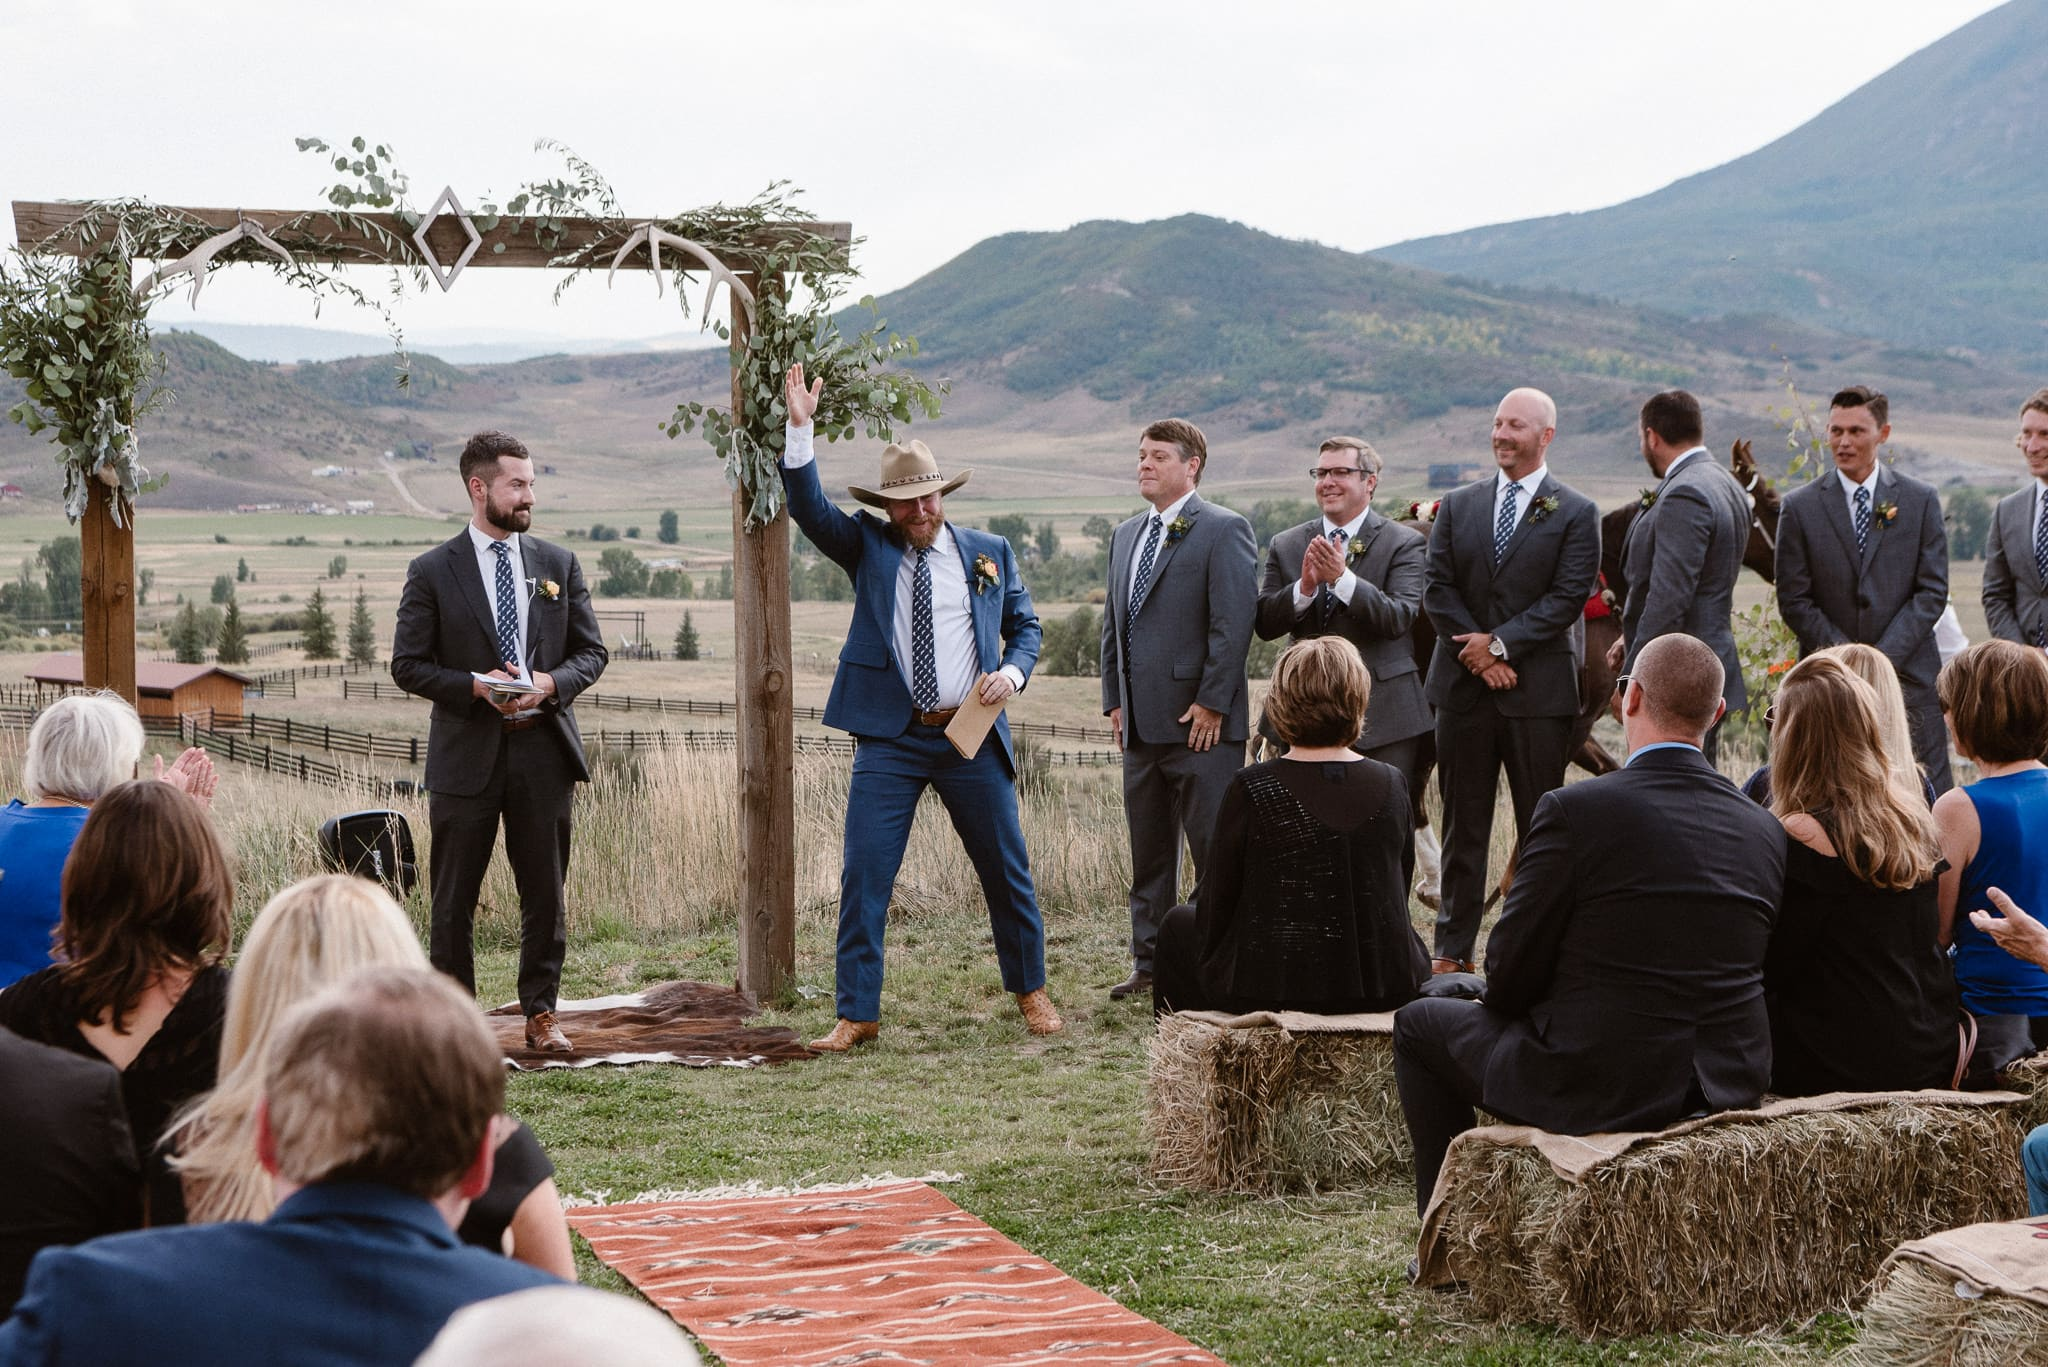 Steamboat Springs wedding photographer, La Joya Dulce wedding, Colorado ranch wedding venues, outdoor wedding ceremony, groom tipping hat to guests